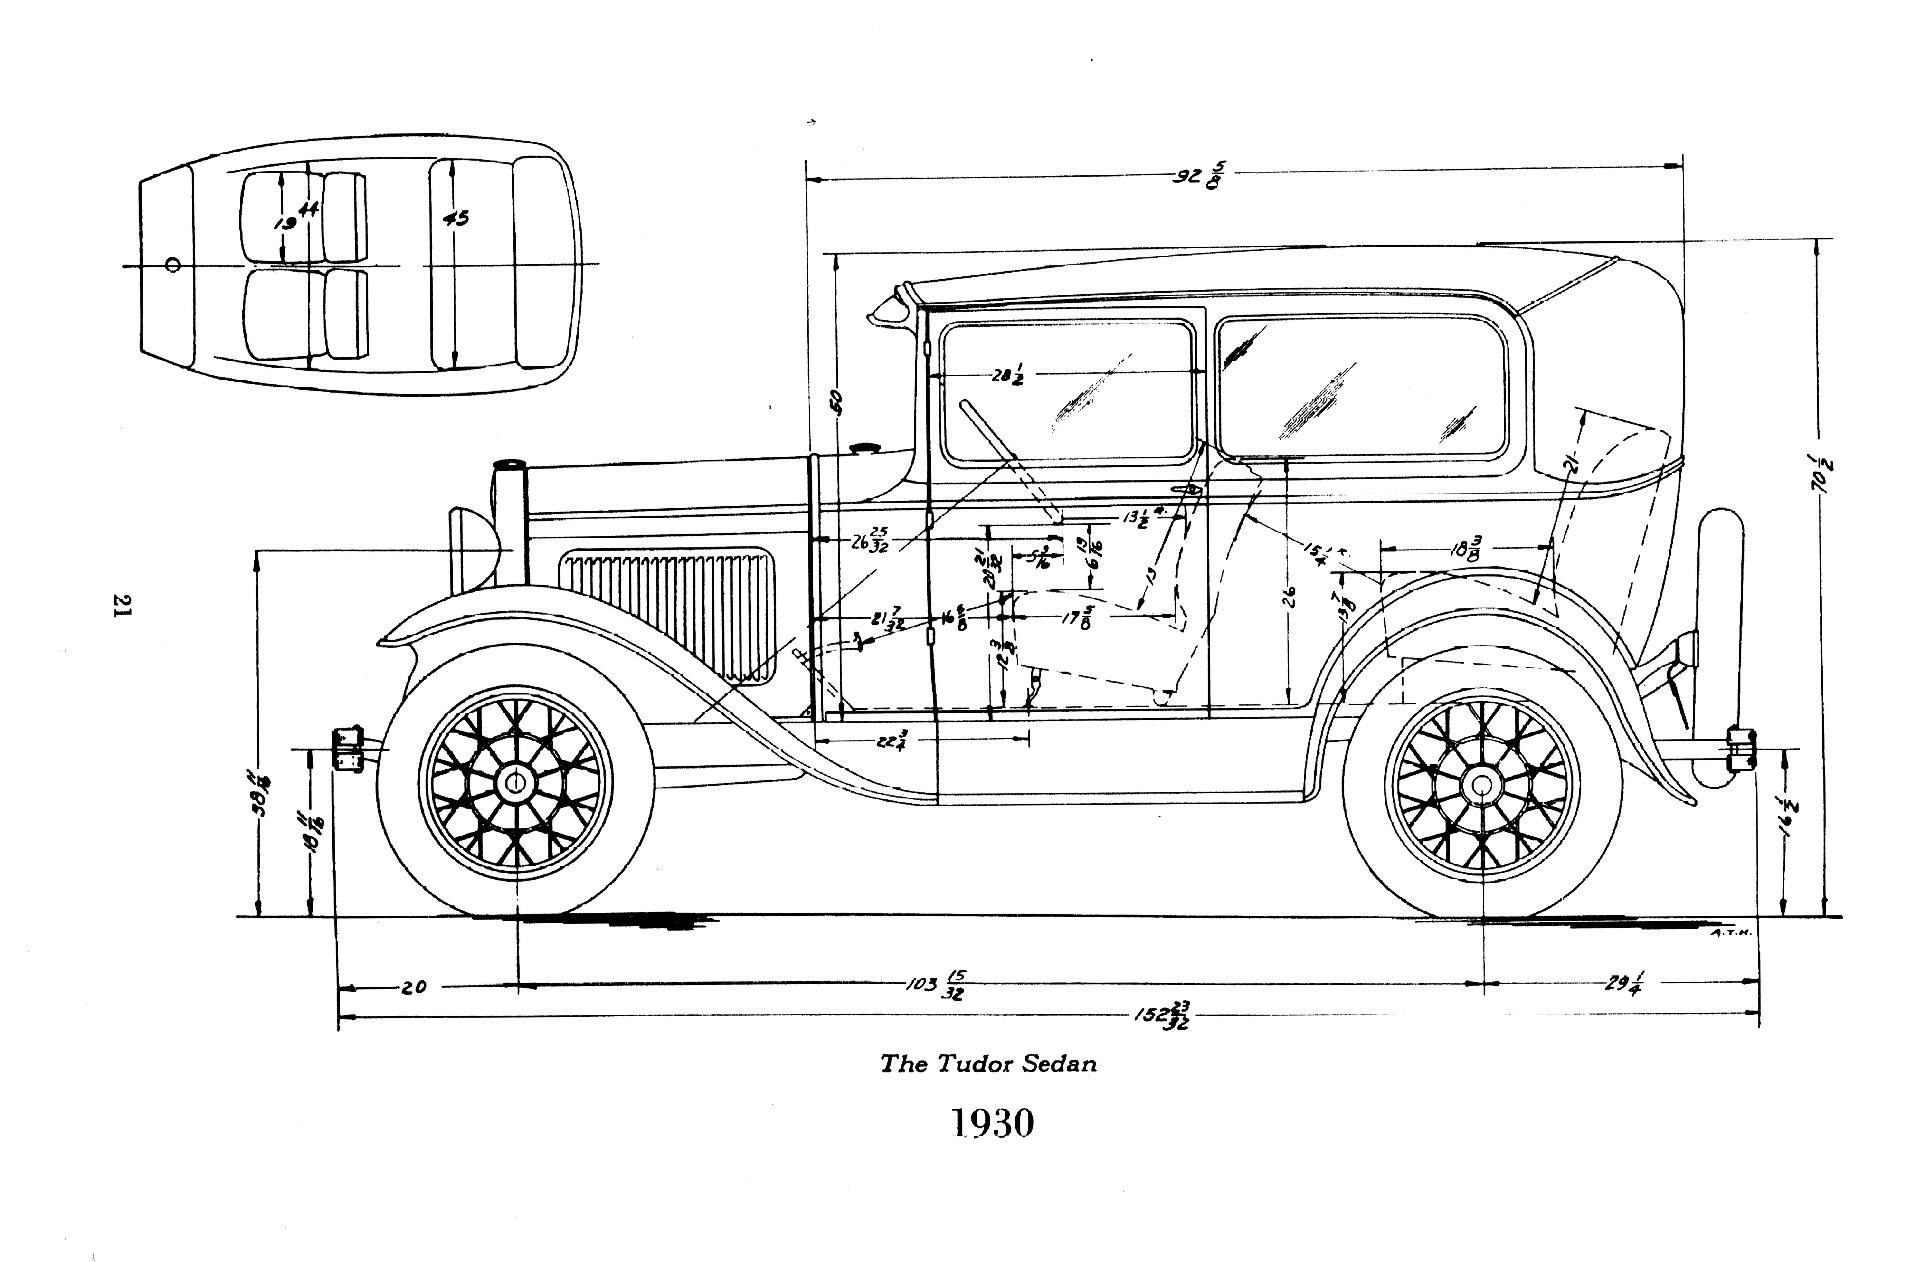 small resolution of model a ford engine drawings ford model a body dimensions motor mayhem